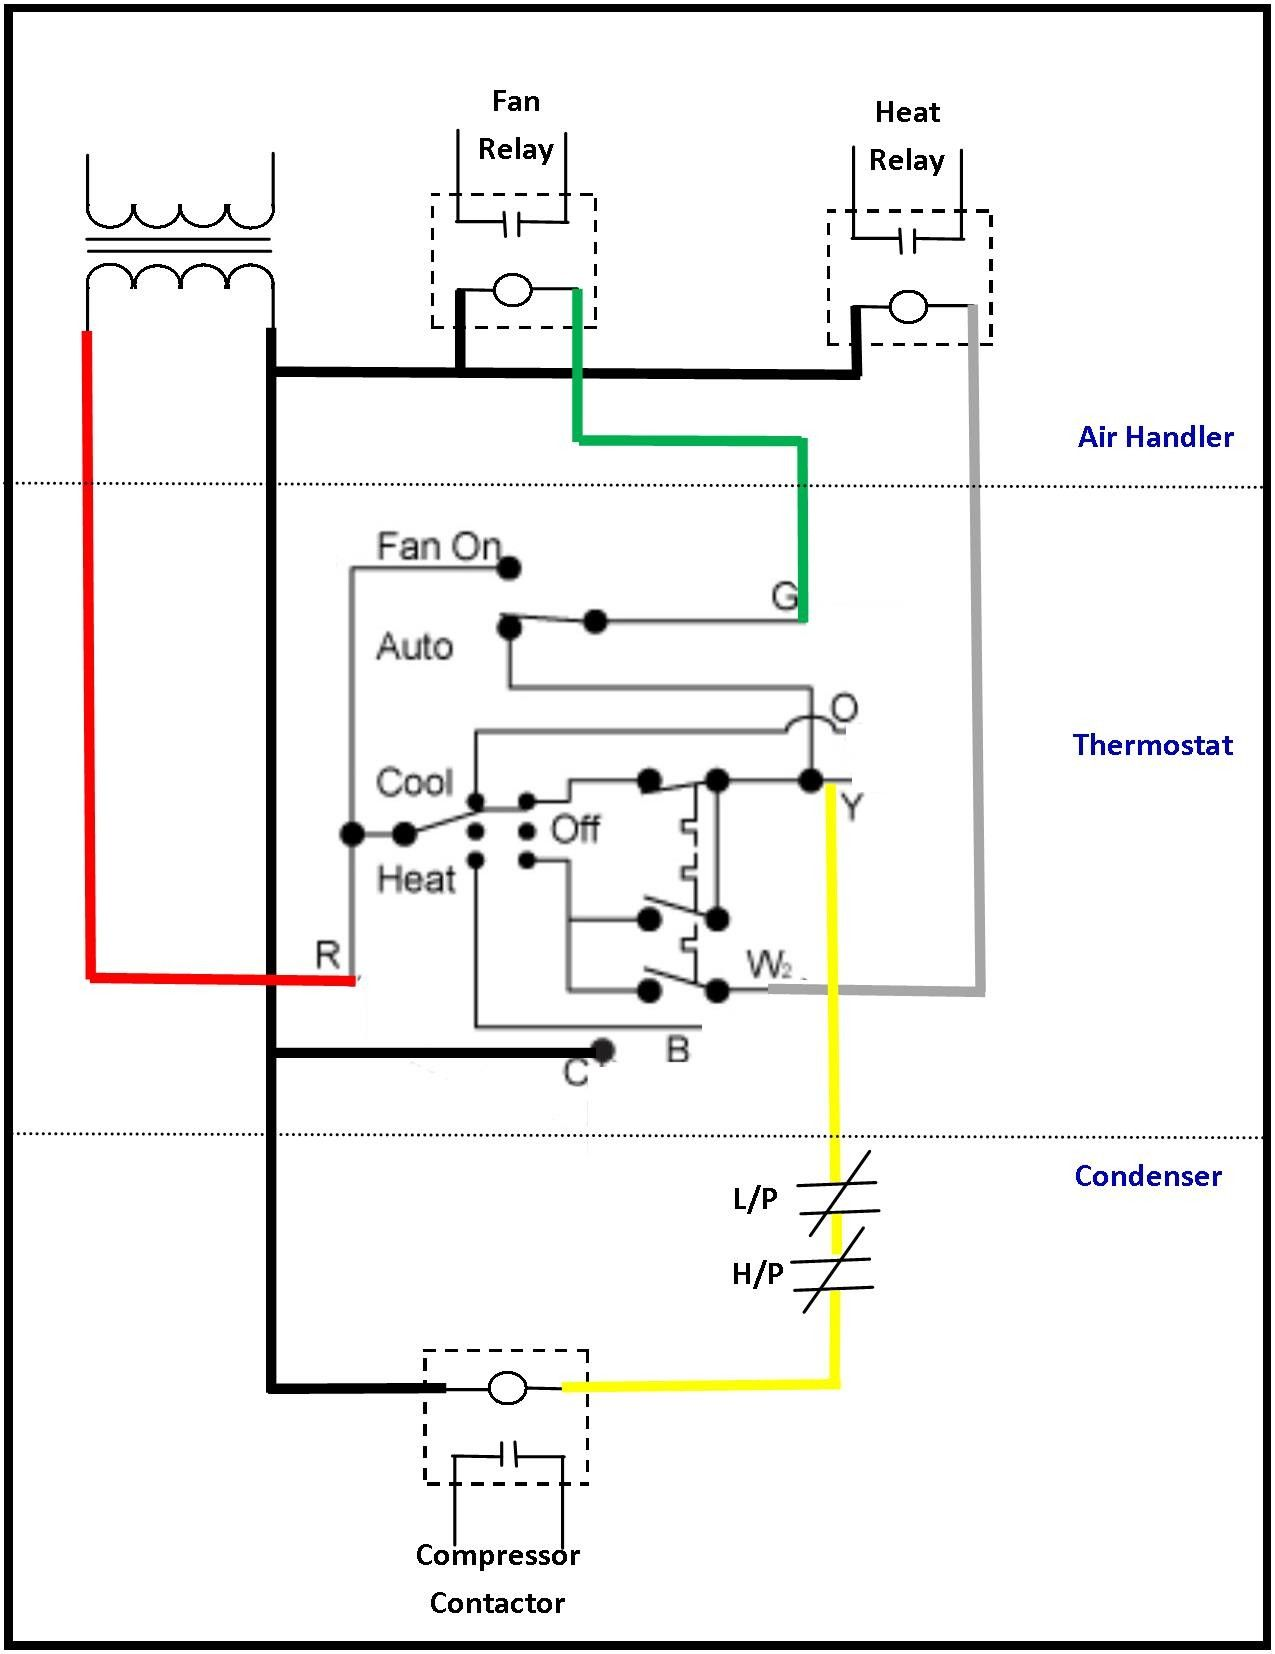 small resolution of new industrial exhaust fan wiring diagram diagram diagramsamplenew industrial exhaust fan wiring diagram diagram diagramsample diagramtemplate